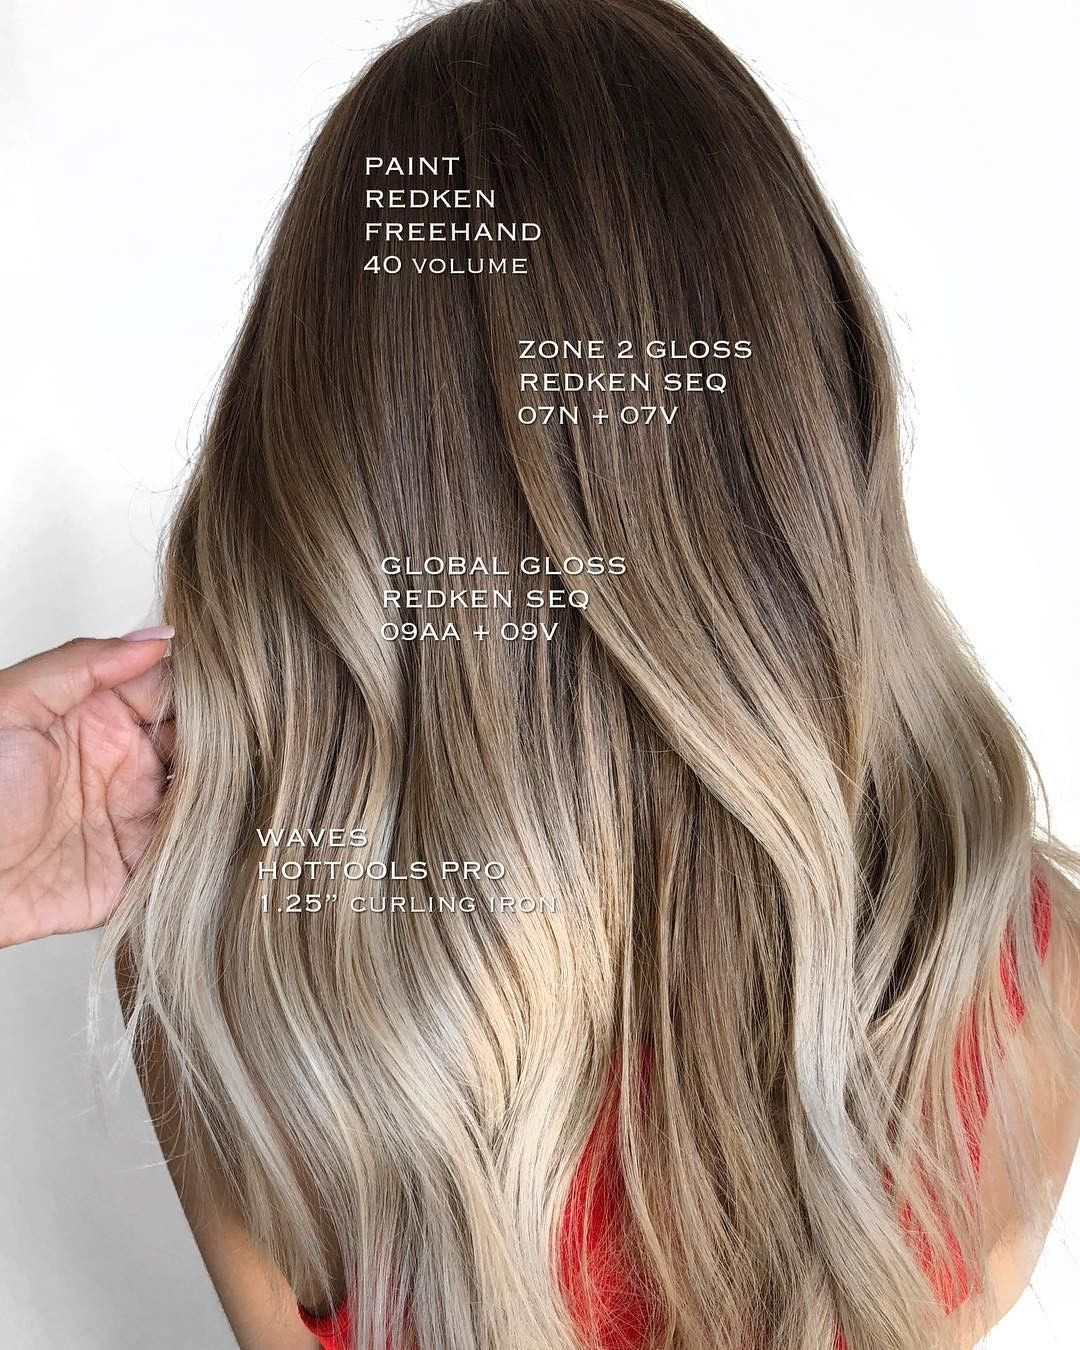 Pin By Dana Gross On Hairstyles In 2019 Redken Hair Color